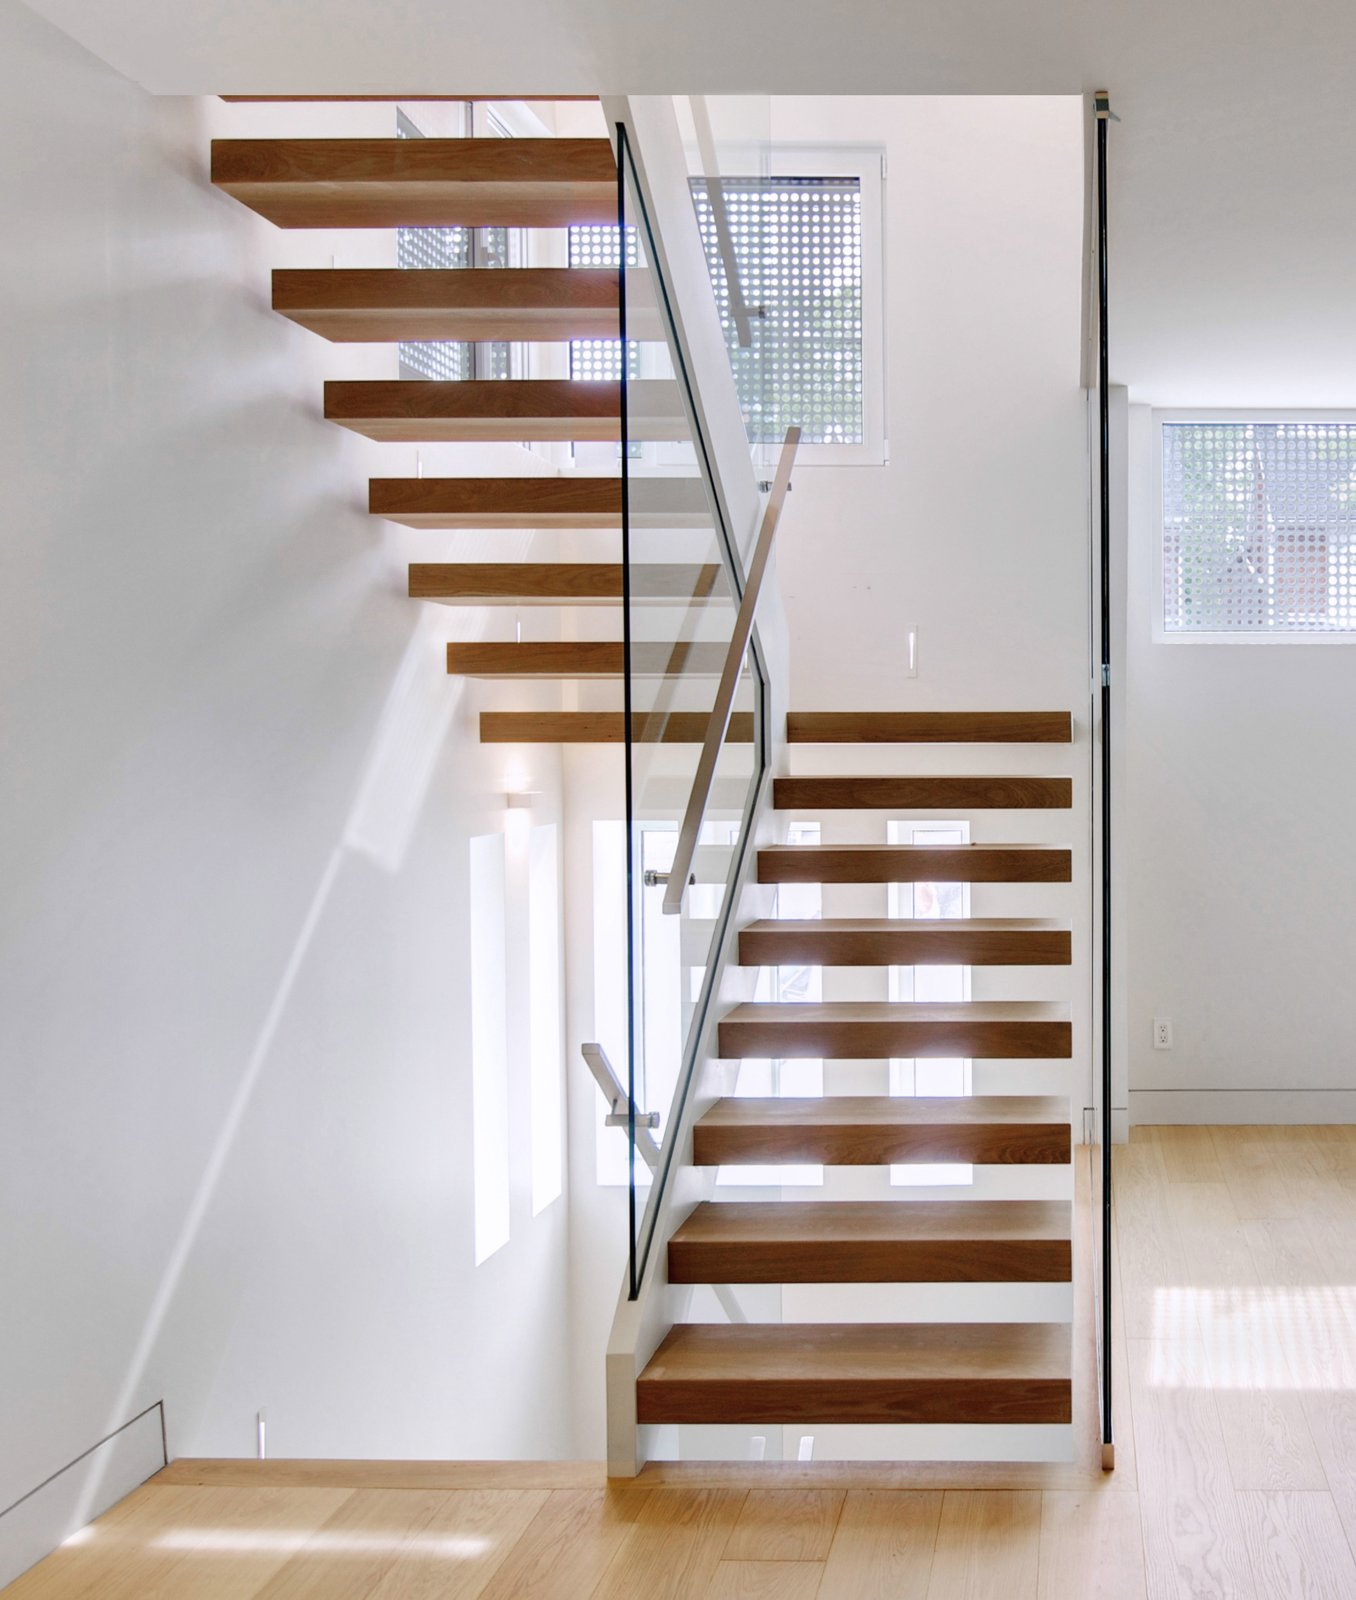 Another peek at the perforated interior windows, which are made from cropped sections of the steel wall in the courtyard.  190+ Best Modern Staircase Ideas from From a Flower Bulb Factory to an Entertainment Hub